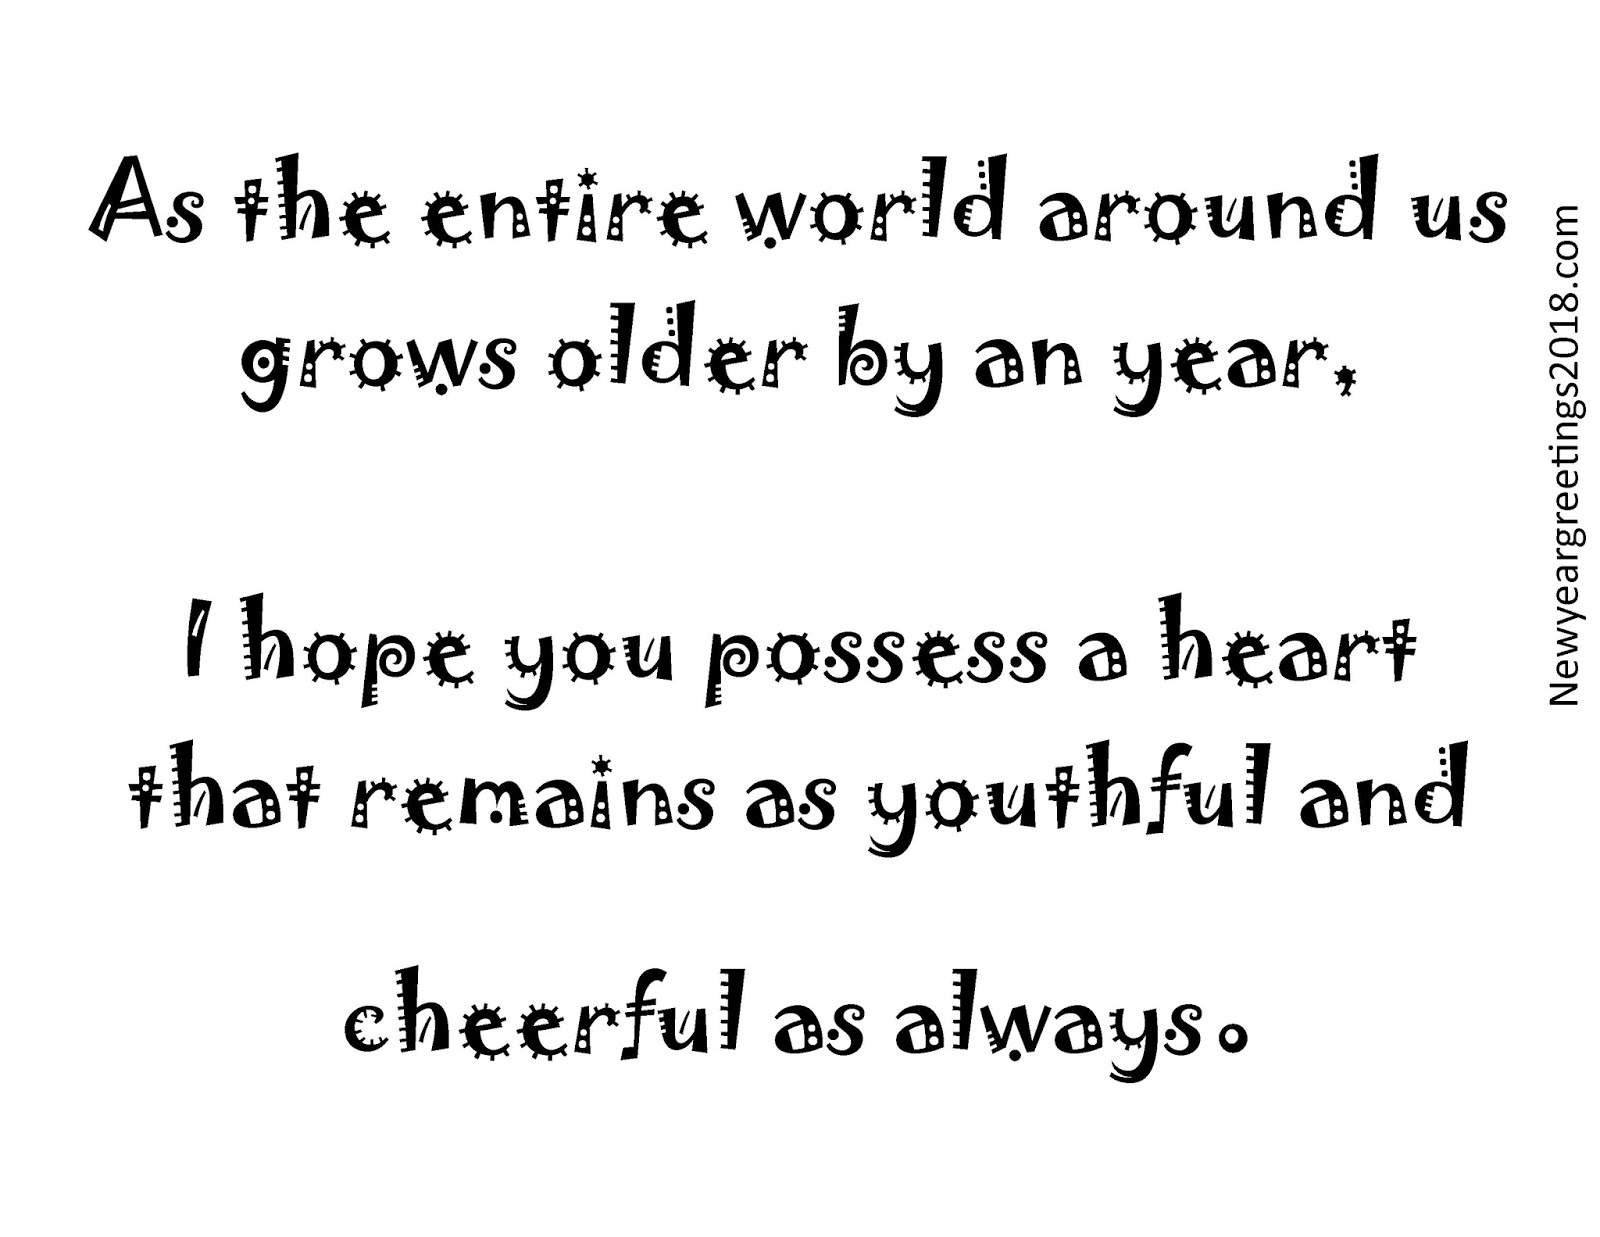 Year 2018 Wishing QUotes